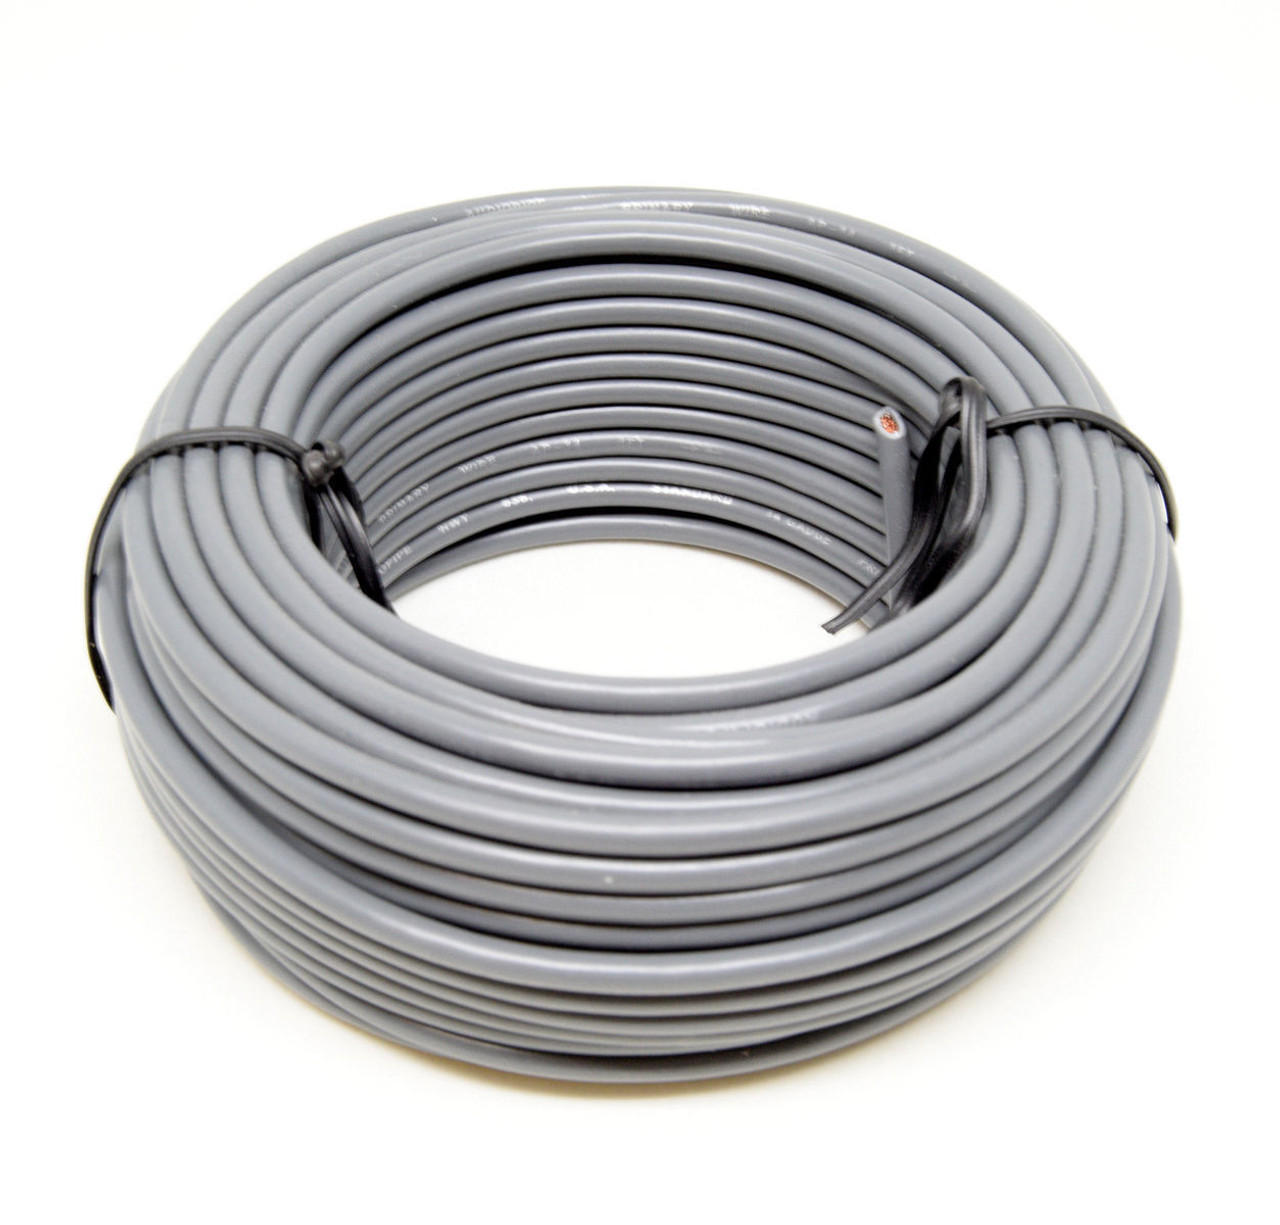 medium resolution of 14 ga 50 gray audiopipe car audio home remote primary cable wire